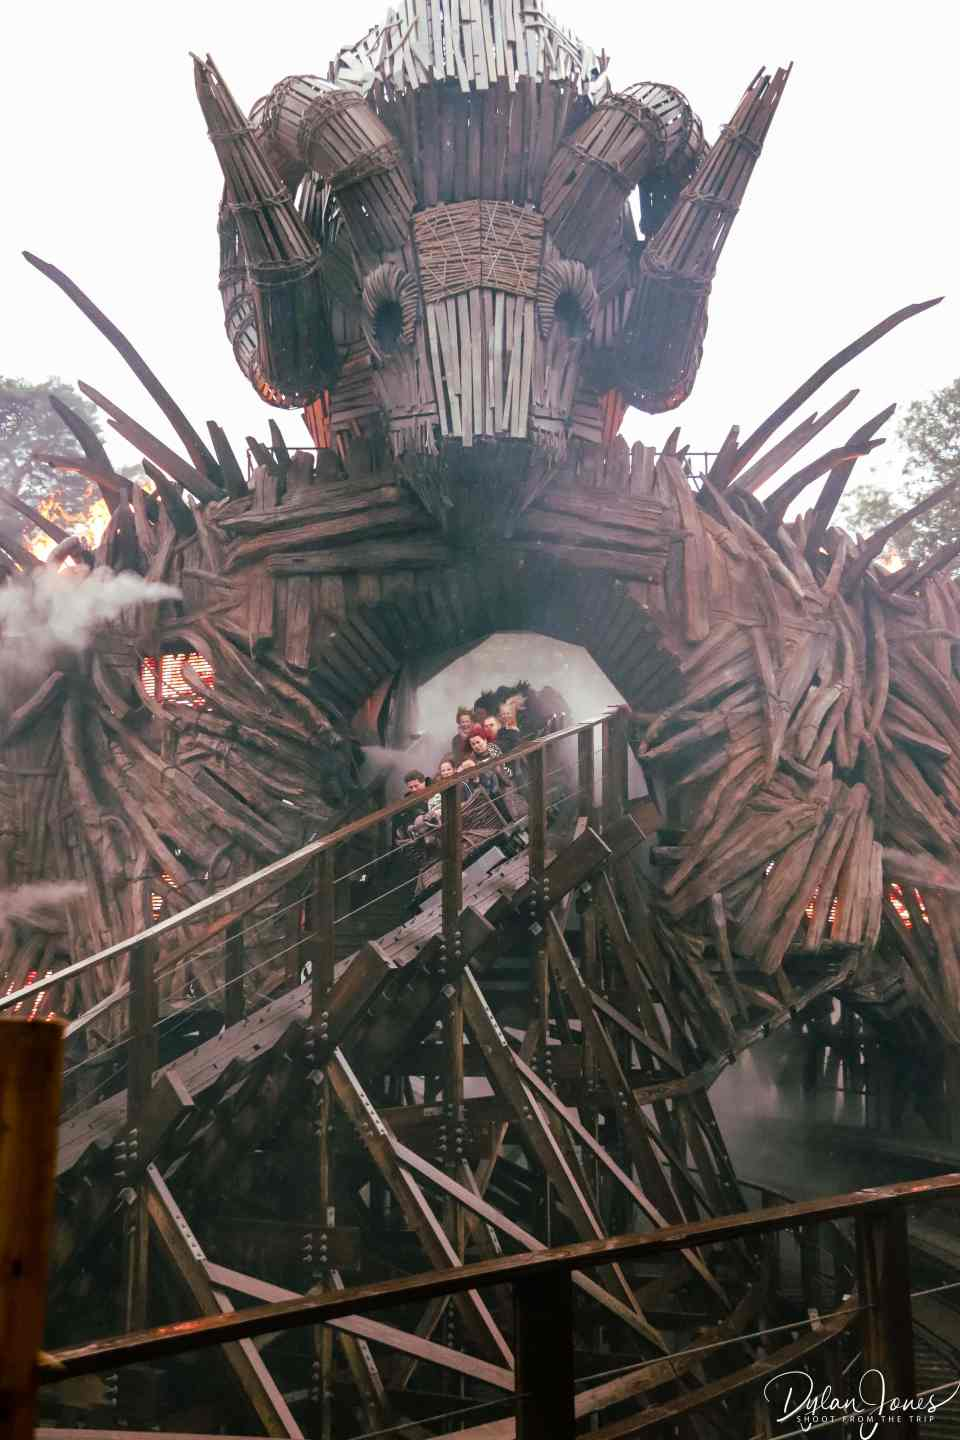 A train of riders hurtling through the Wicker Man at Alton Towers